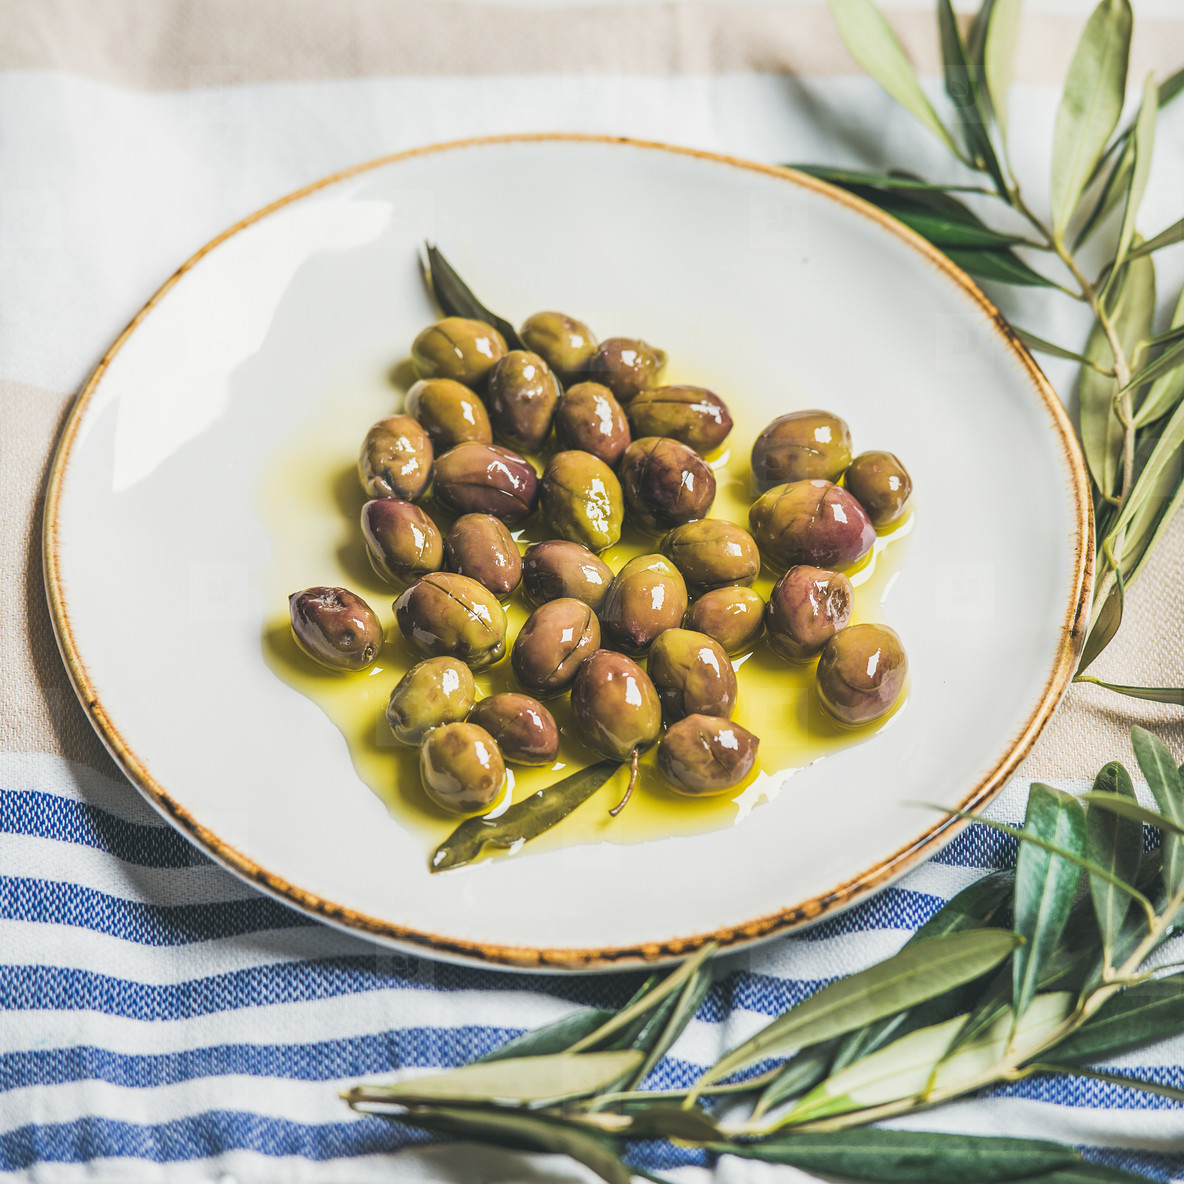 Pickled green Mediterranean olives and olive tree branch on towel